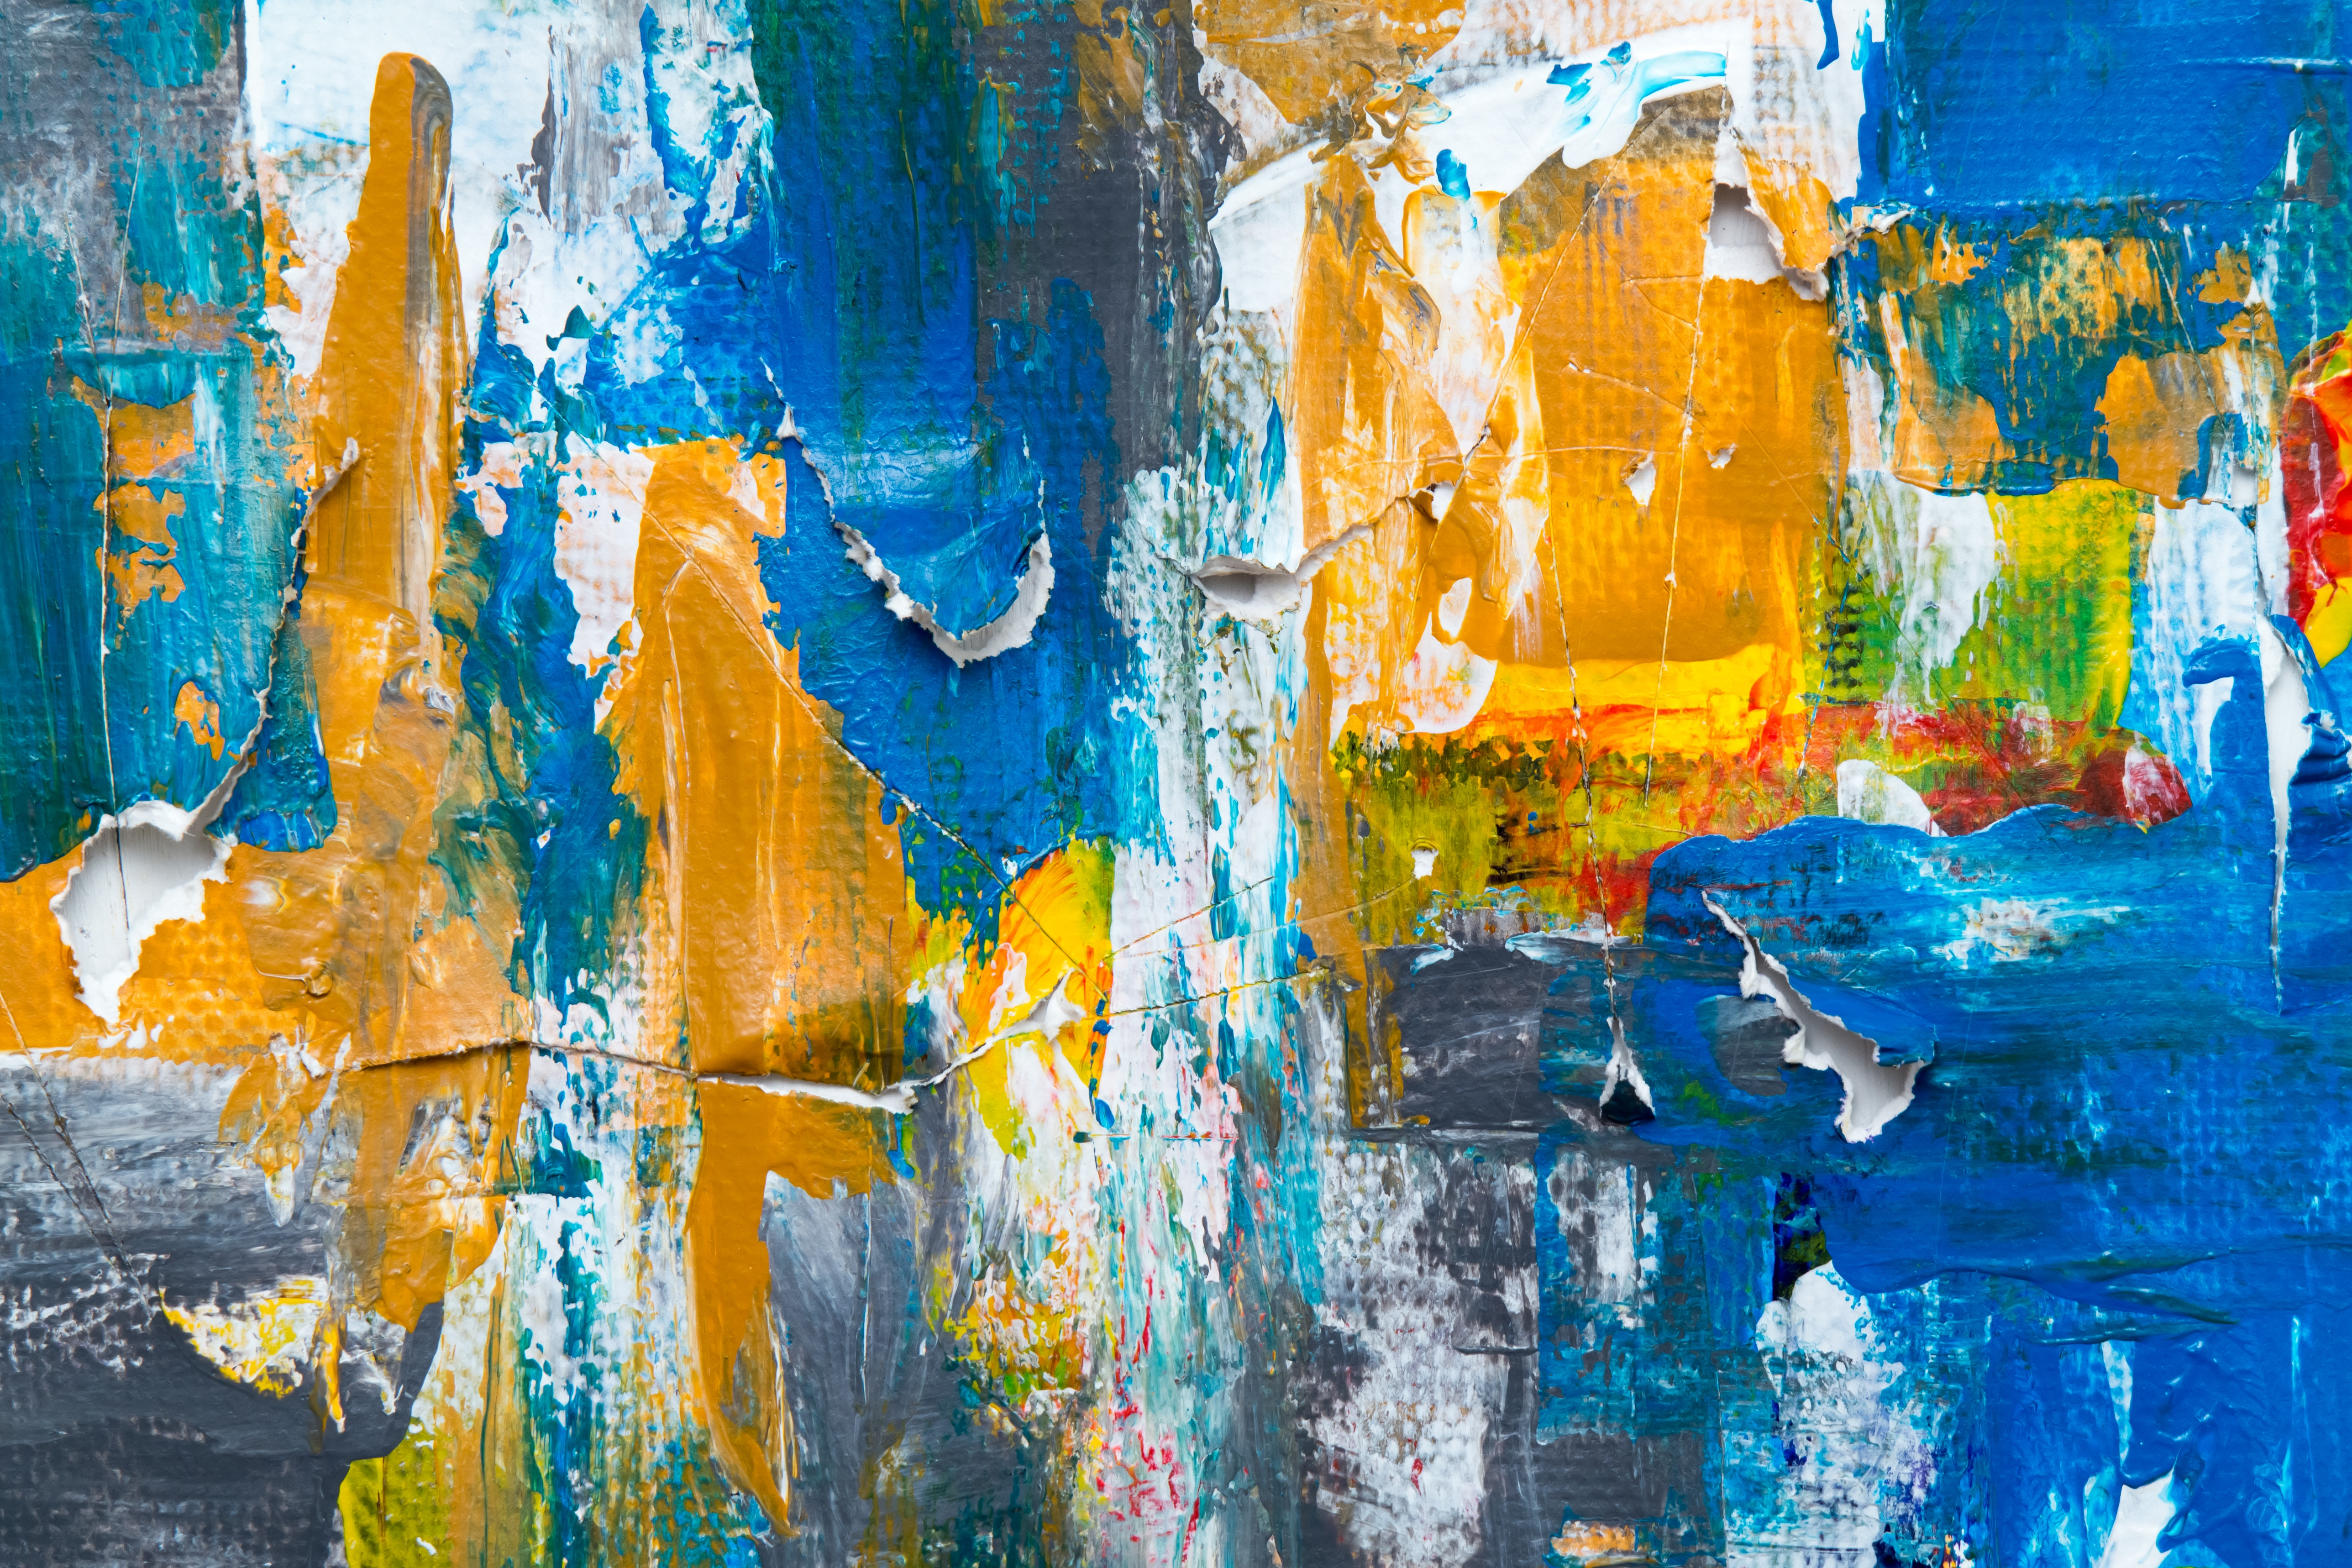 153990 download wallpaper Textures, Texture, Canvas, Paint, Smears, Strokes, Multicolored, Motley, Modern Art, Contemporary Art, Abstract screensavers and pictures for free